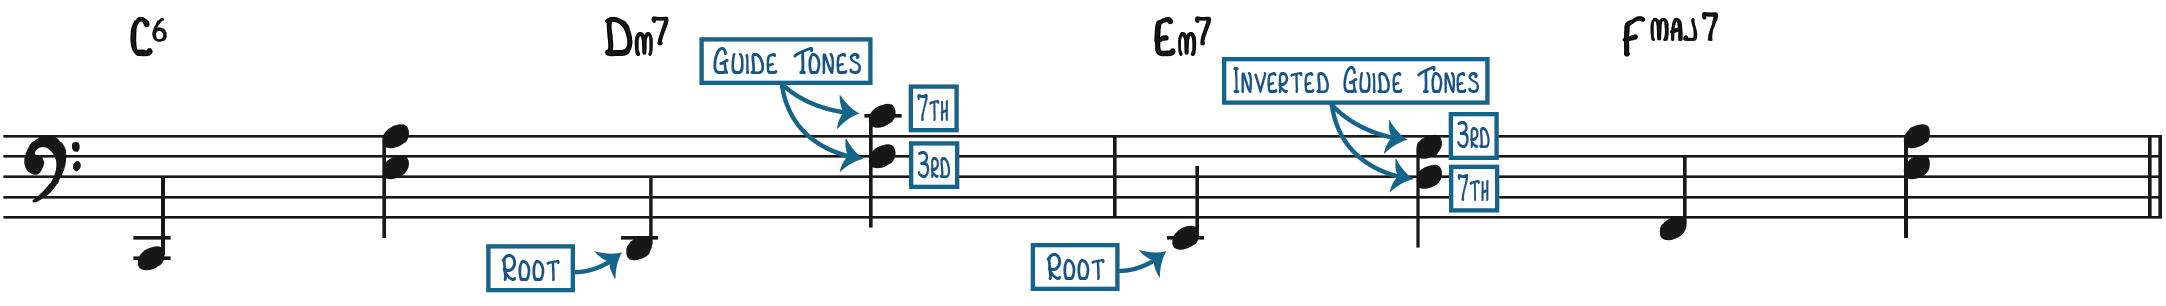 The Christmas Song Cocktail Jazz Stylization using Guide Tones on Piano Accompaniment